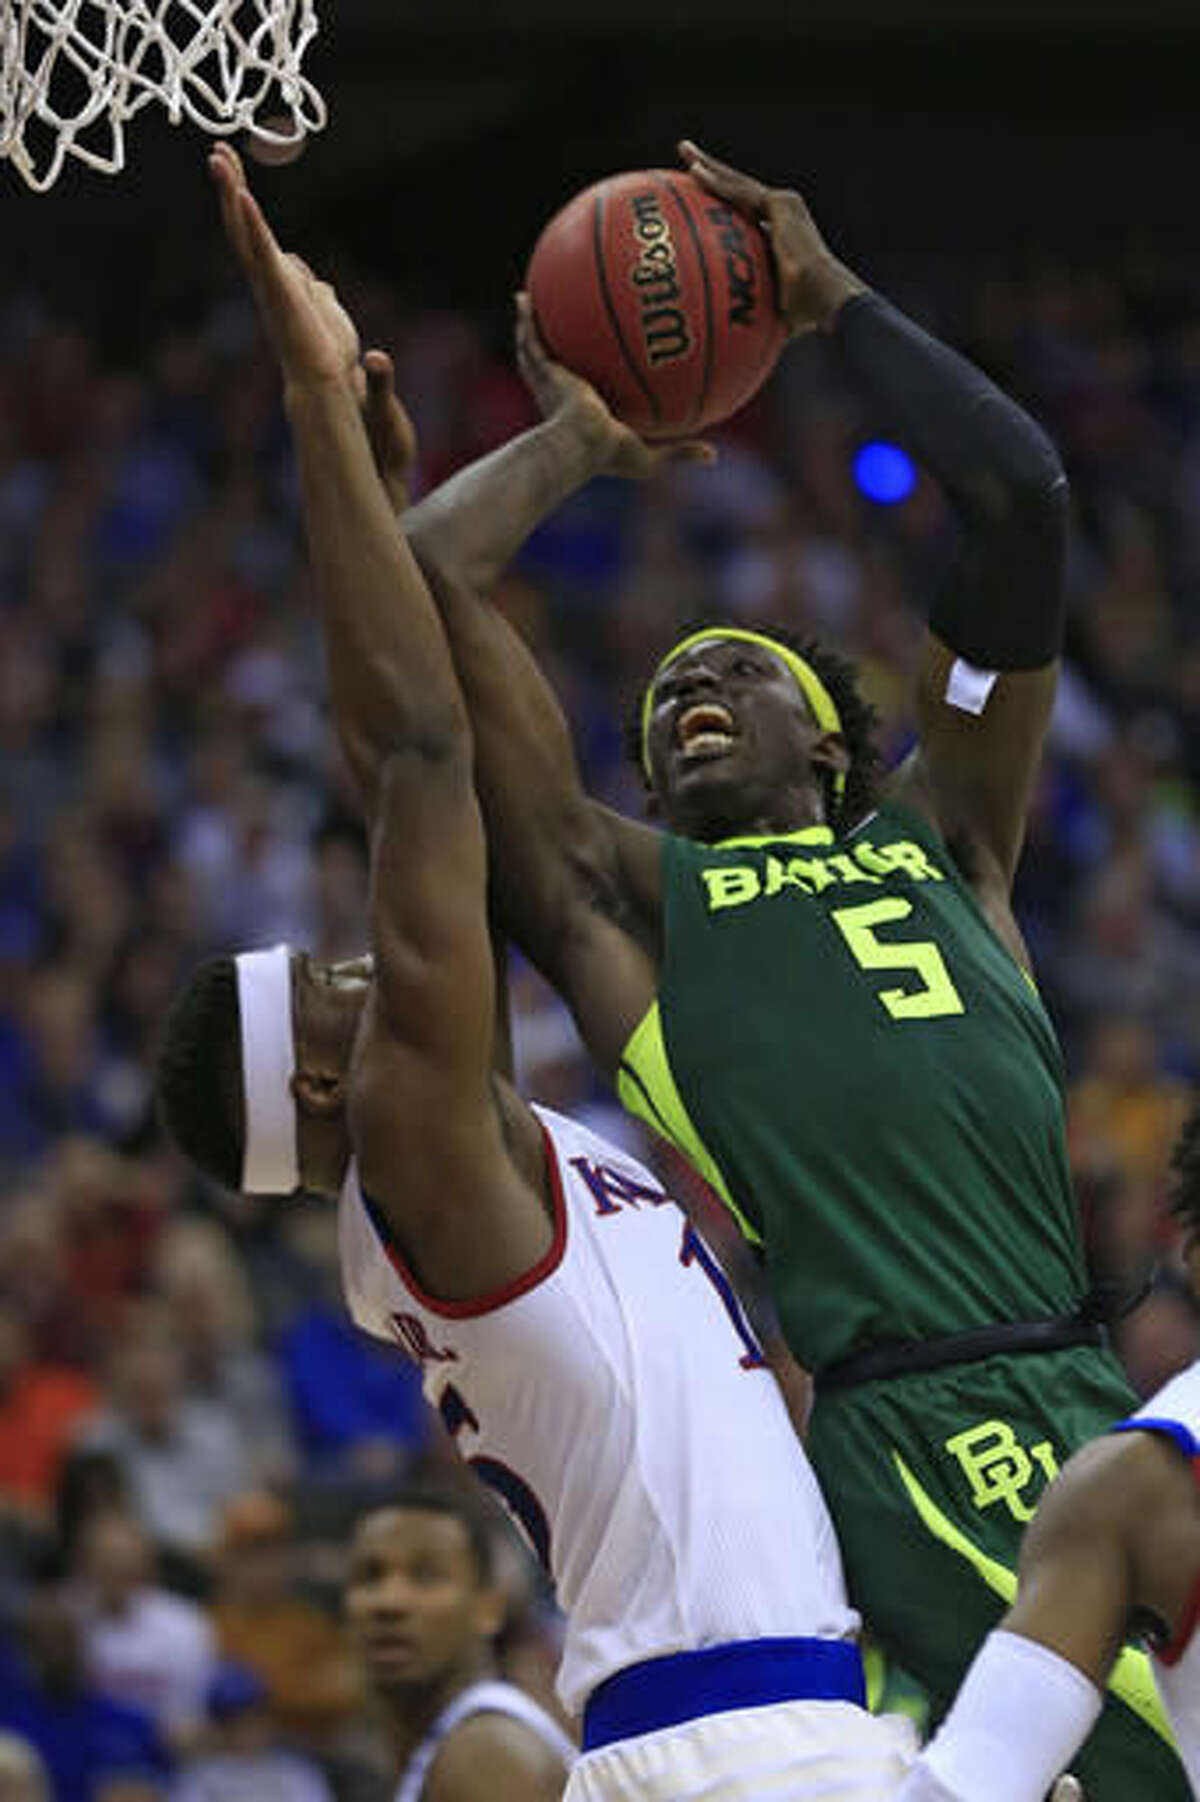 FILE - In this Friday, March 11, 2016, file photo, Baylor forward Johnathan Motley (5) goes to the basket as Kansas forward Carlton Bragg Jr. (15) defends during the second half of an NCAA college basketball game in the semifinals of the Big 12 conference tournament in Kansas City, Mo. Baylor has become an NCAA Tournament regular under coach Scott Drew. (AP Photo/Orlin Wagner, File)